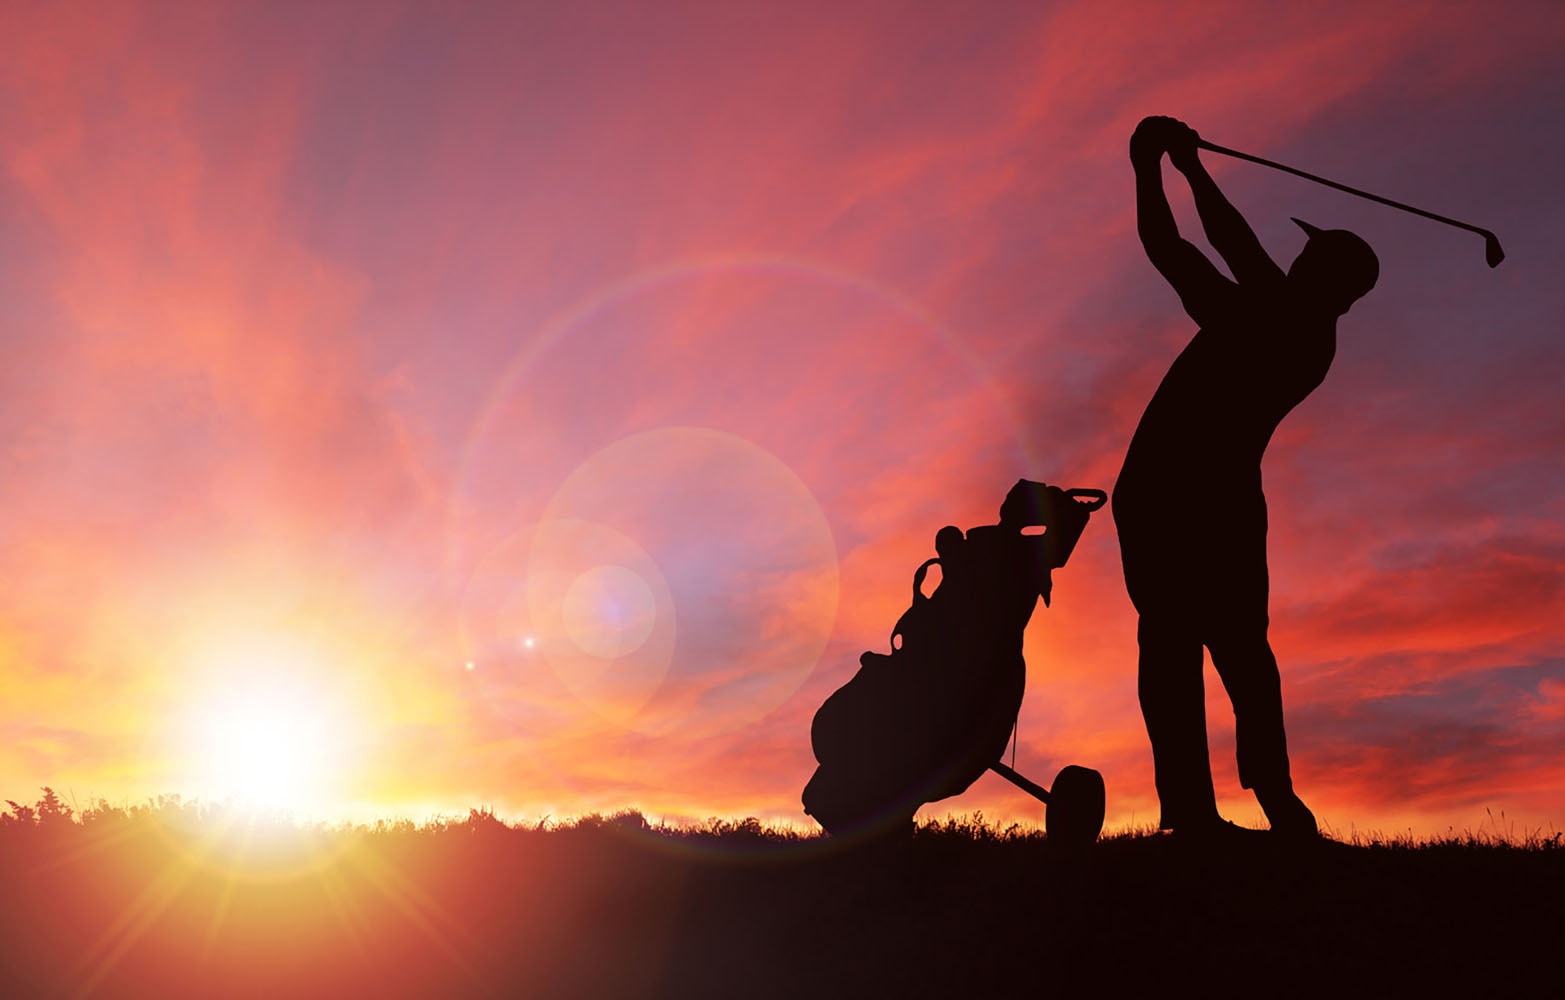 A golfer at sunset